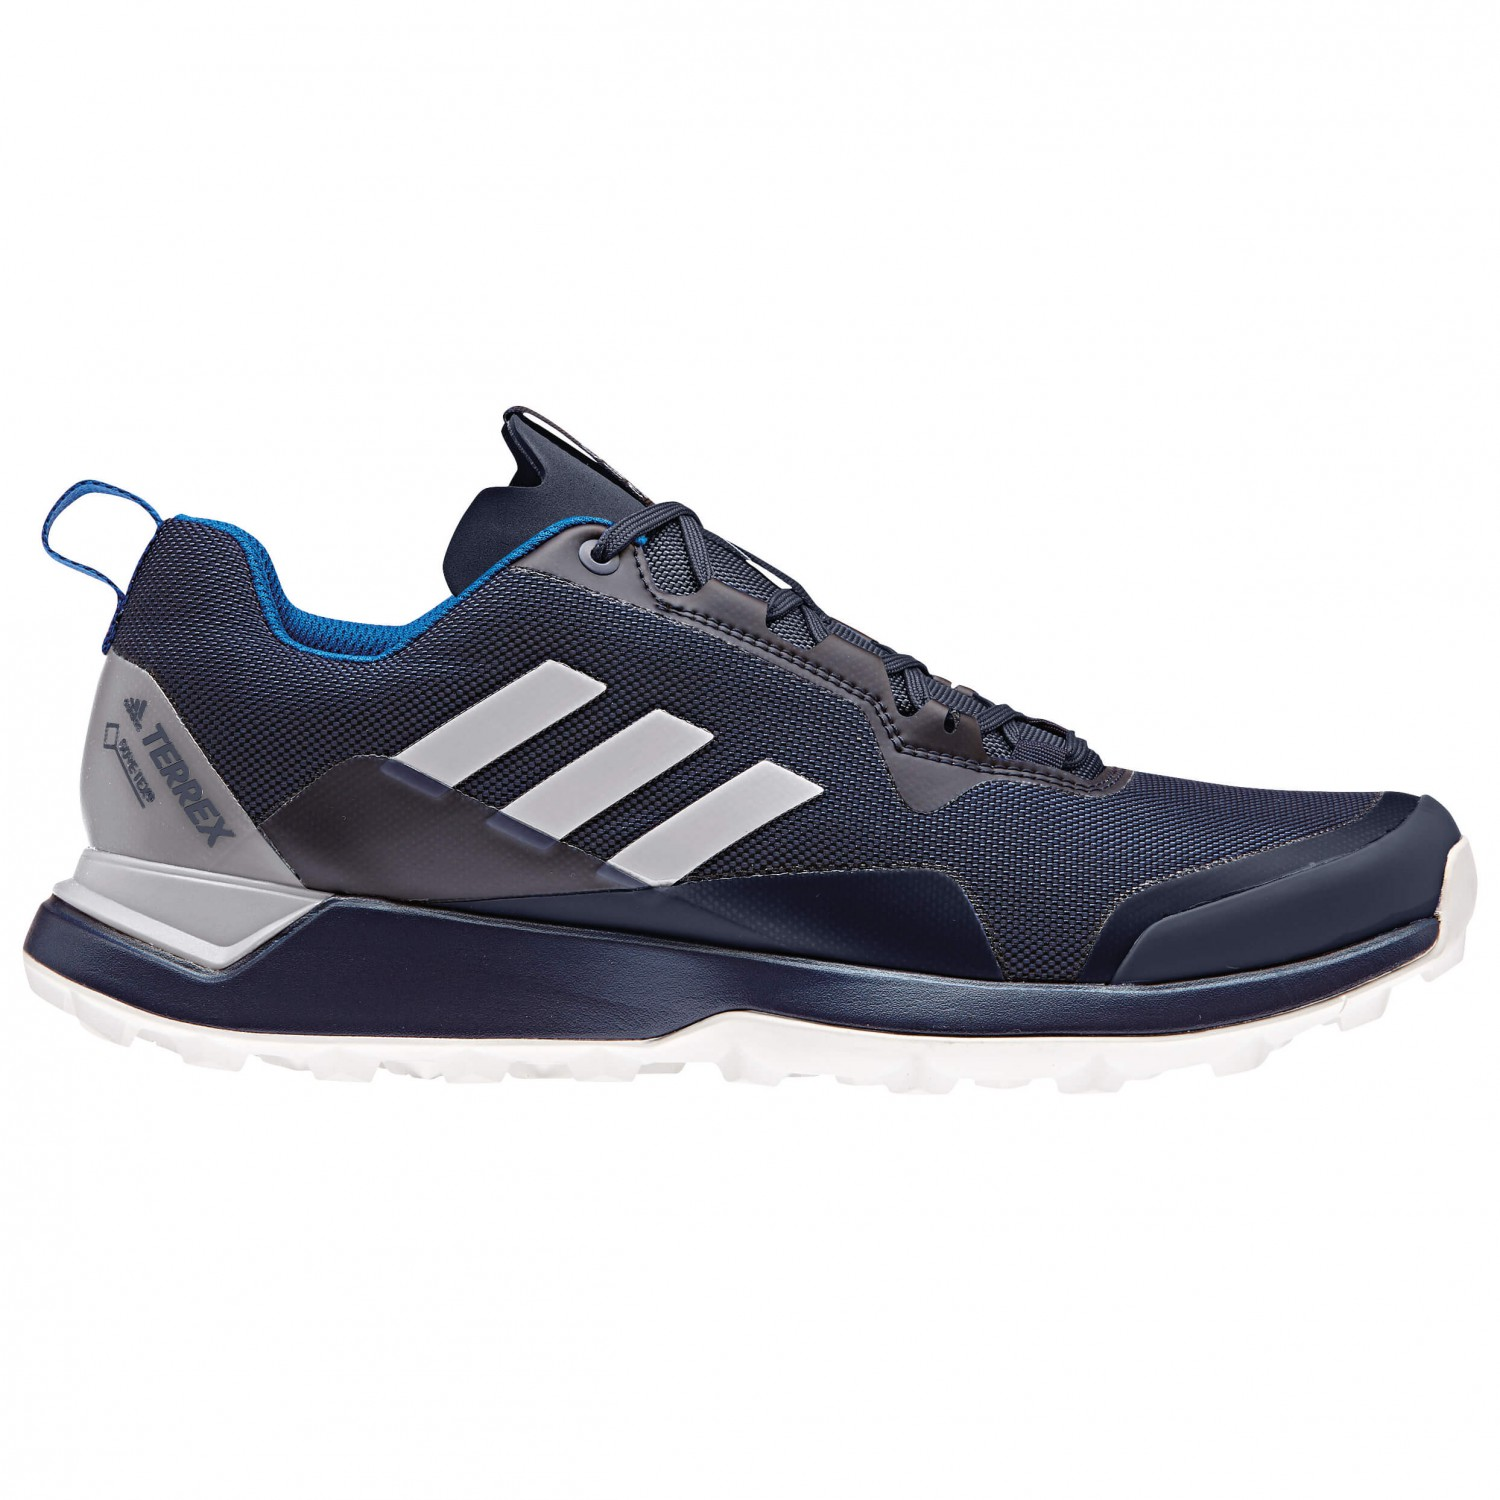 Adidas Kids Shoes Running Outlet